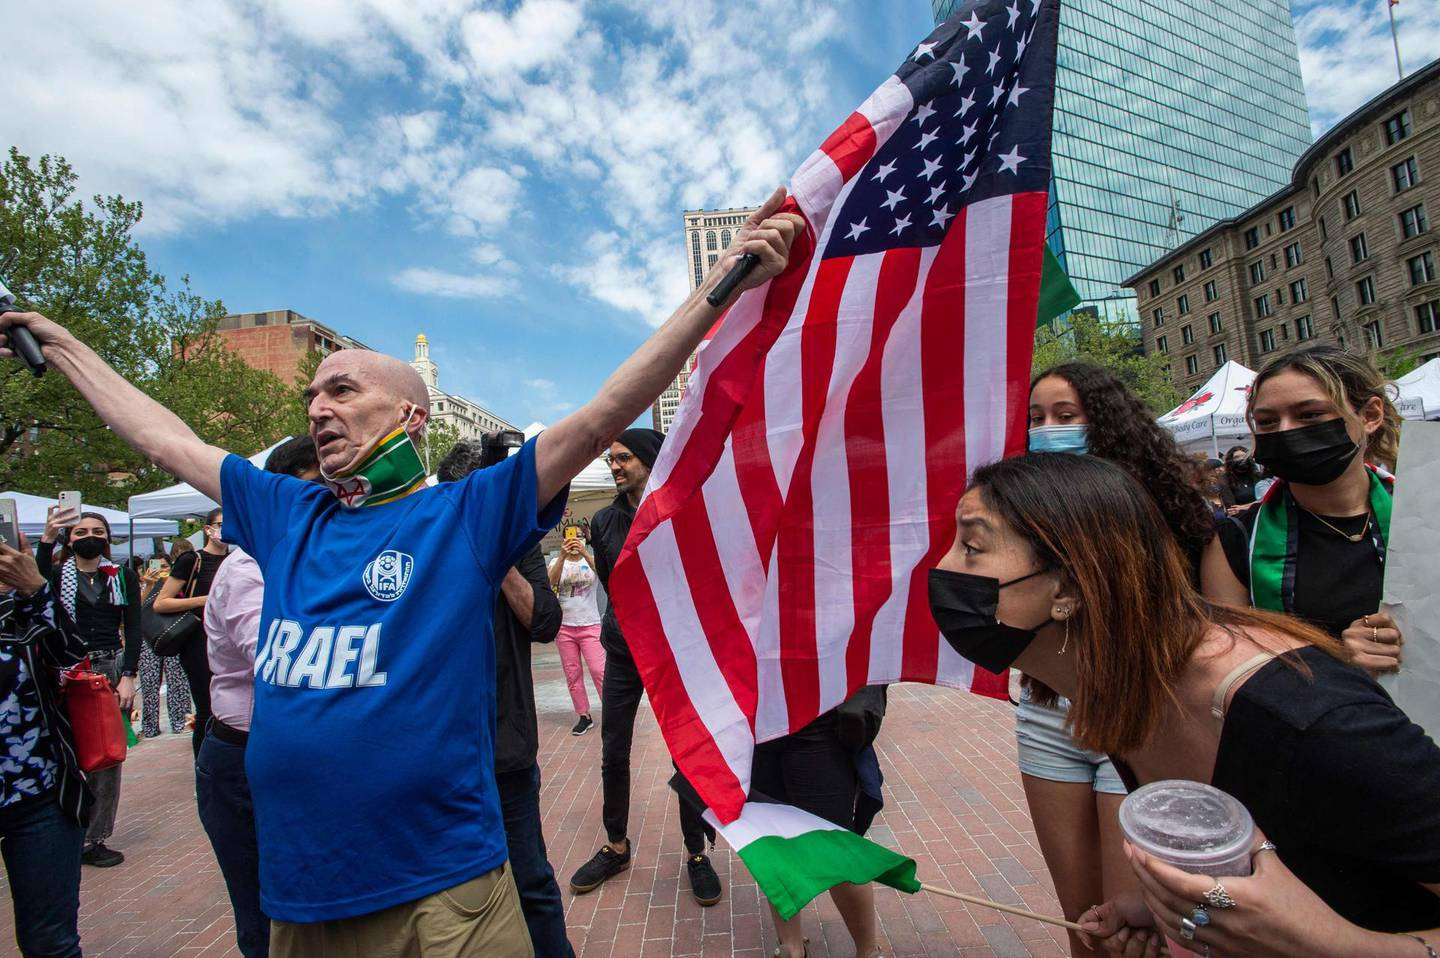 """A man, who claims to have been a member of the Israeli army for 32 years, is surrounded by pro-Palestinian supporters who shout at him and eventually steal his flag during a rally in support of Palestine in Copley Square in Boston, Massachusetts, May 15, 2021.  Speakers called for an end of international and US funding of Isreal's military. US President Joe Biden, in a phone call with Israeli Prime Minister Benjamin Netanyahu, expressed his """"grave concern"""" Saturday over the flareup of violence in Israel and Gaza, the White House announced.  / AFP / Joseph Prezioso"""